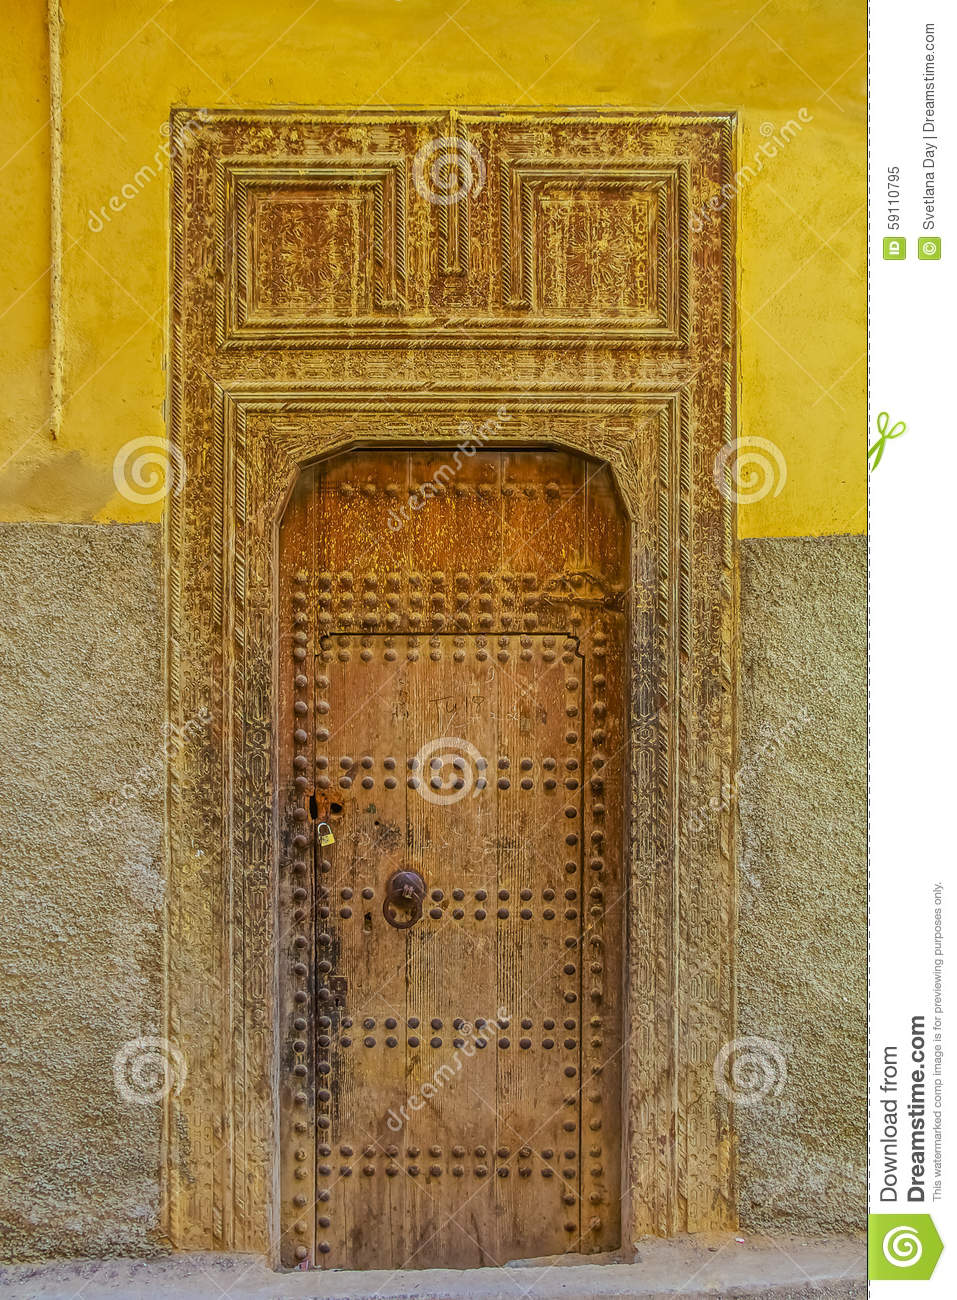 Vieille porte d 39 une maison marocaine traditionnelle photo stock image - Description d une maison traditionnelle marocaine ...